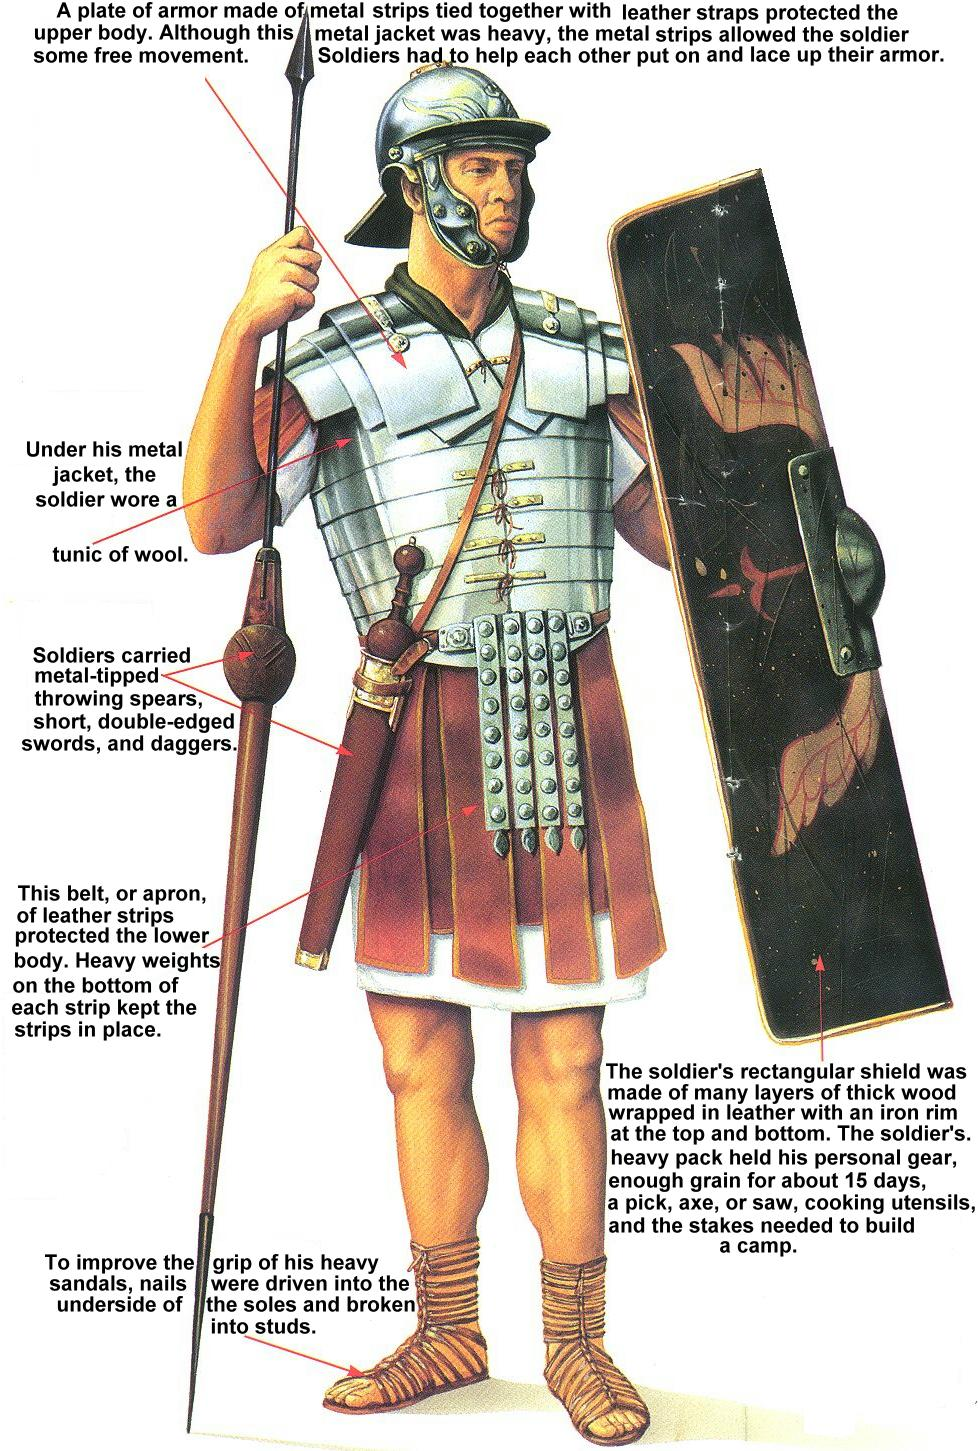 Roman Army Weapons and Armor http://revgregsmith.blogspot.com/2012/06/normal-0-microsoftinternetexplorer4.html